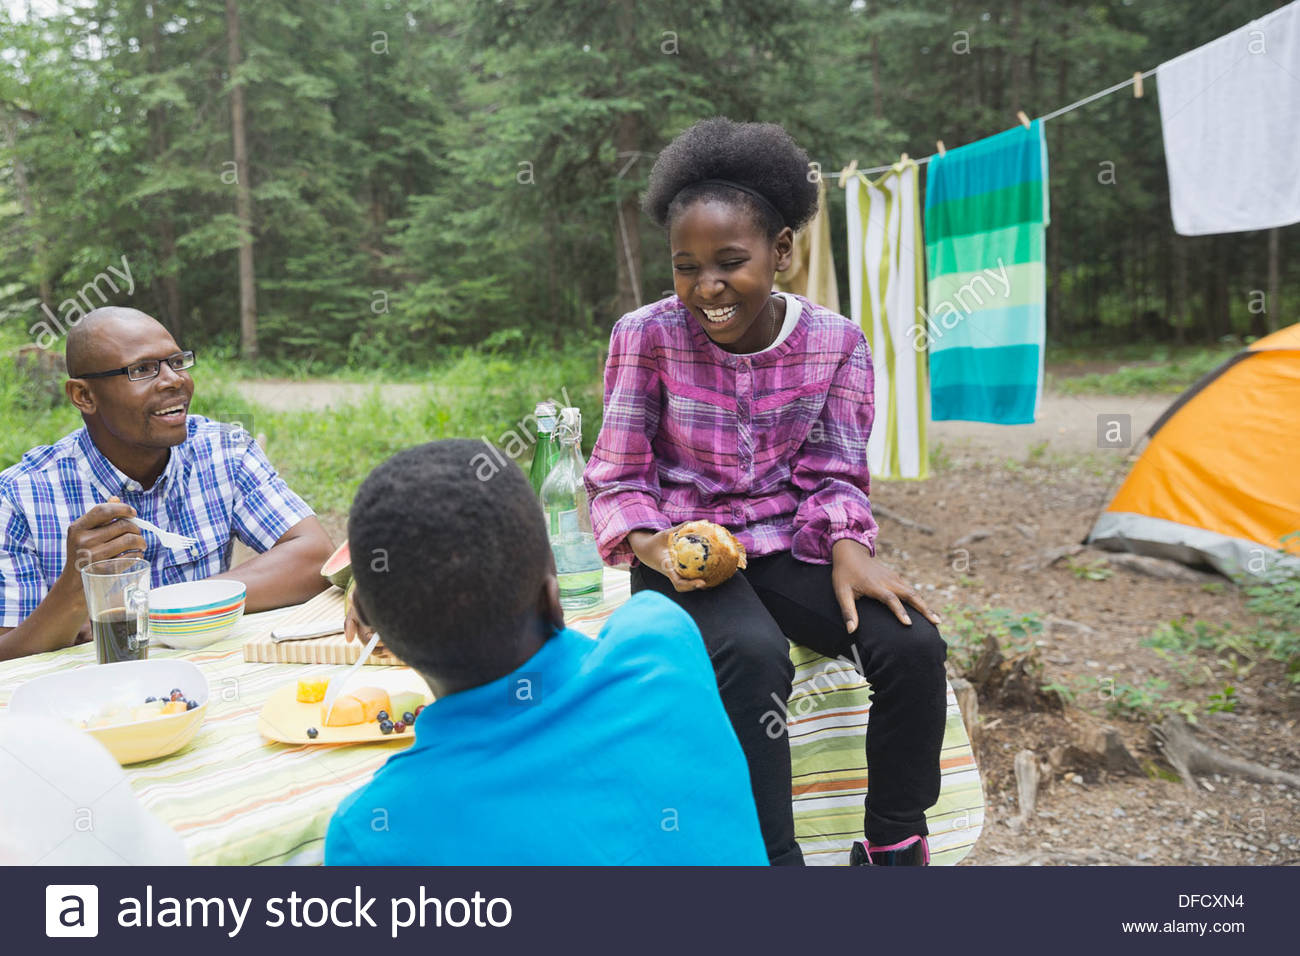 Happy children and father enjoying meal at campsite - Stock Image